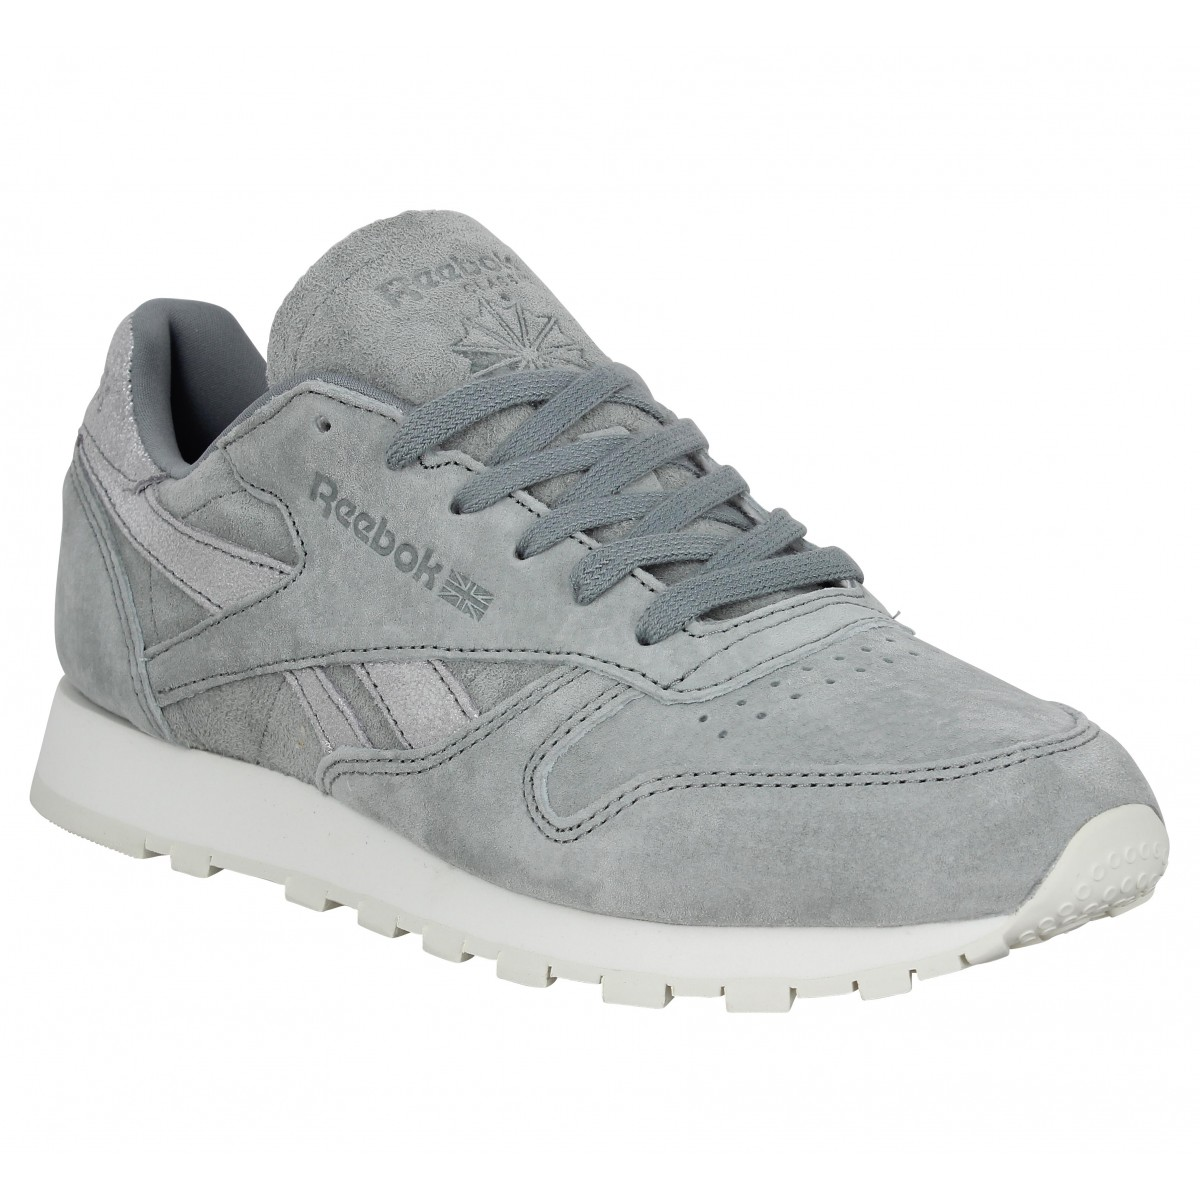 Basket Reebok Classic Basket Femme Reebok Leather trshdQC